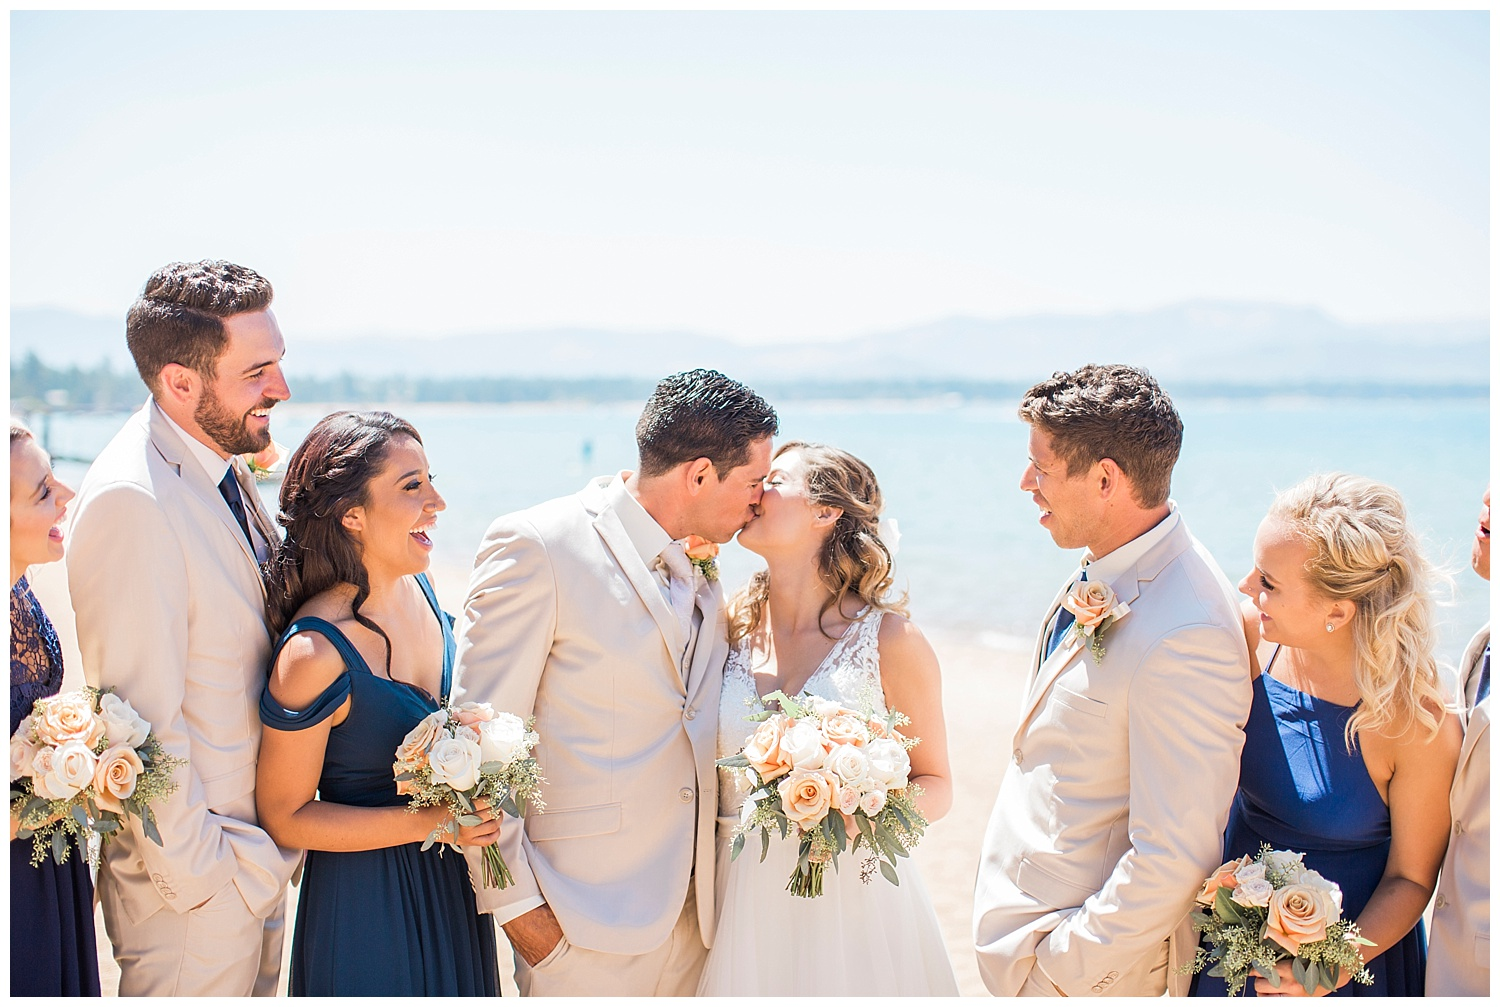 tahoe-wedding-edgewood-nicole-quiroz-photographer-lake-tahoe-california-sacramento-NICOLEQUIROZ_020.jpg